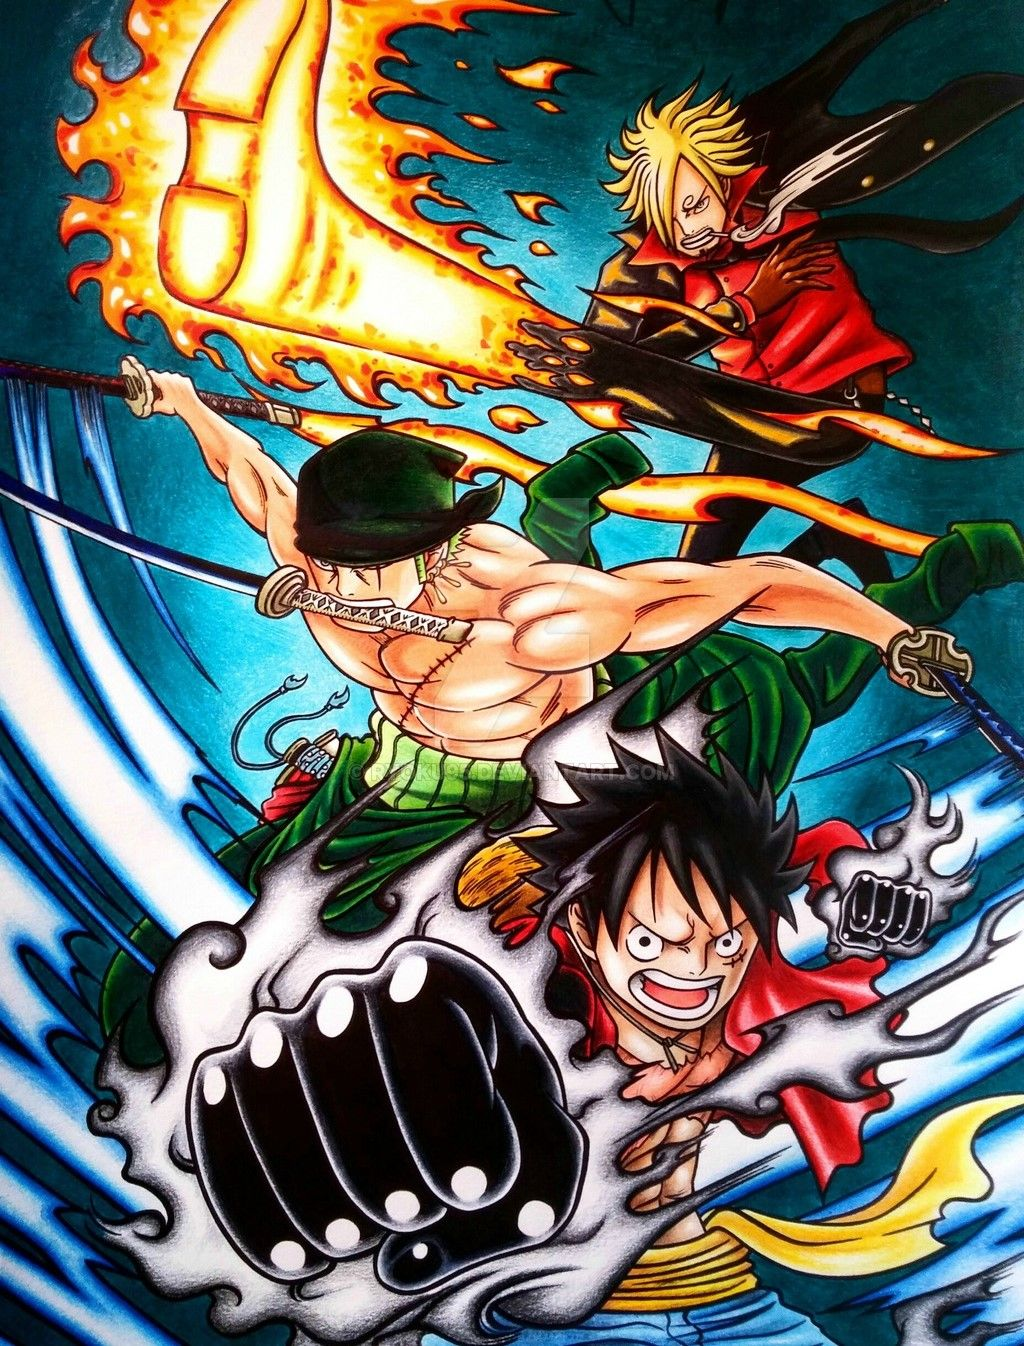 Luffy Zoro & Sanji Vs Meliodas Ban & King Battles em 2020